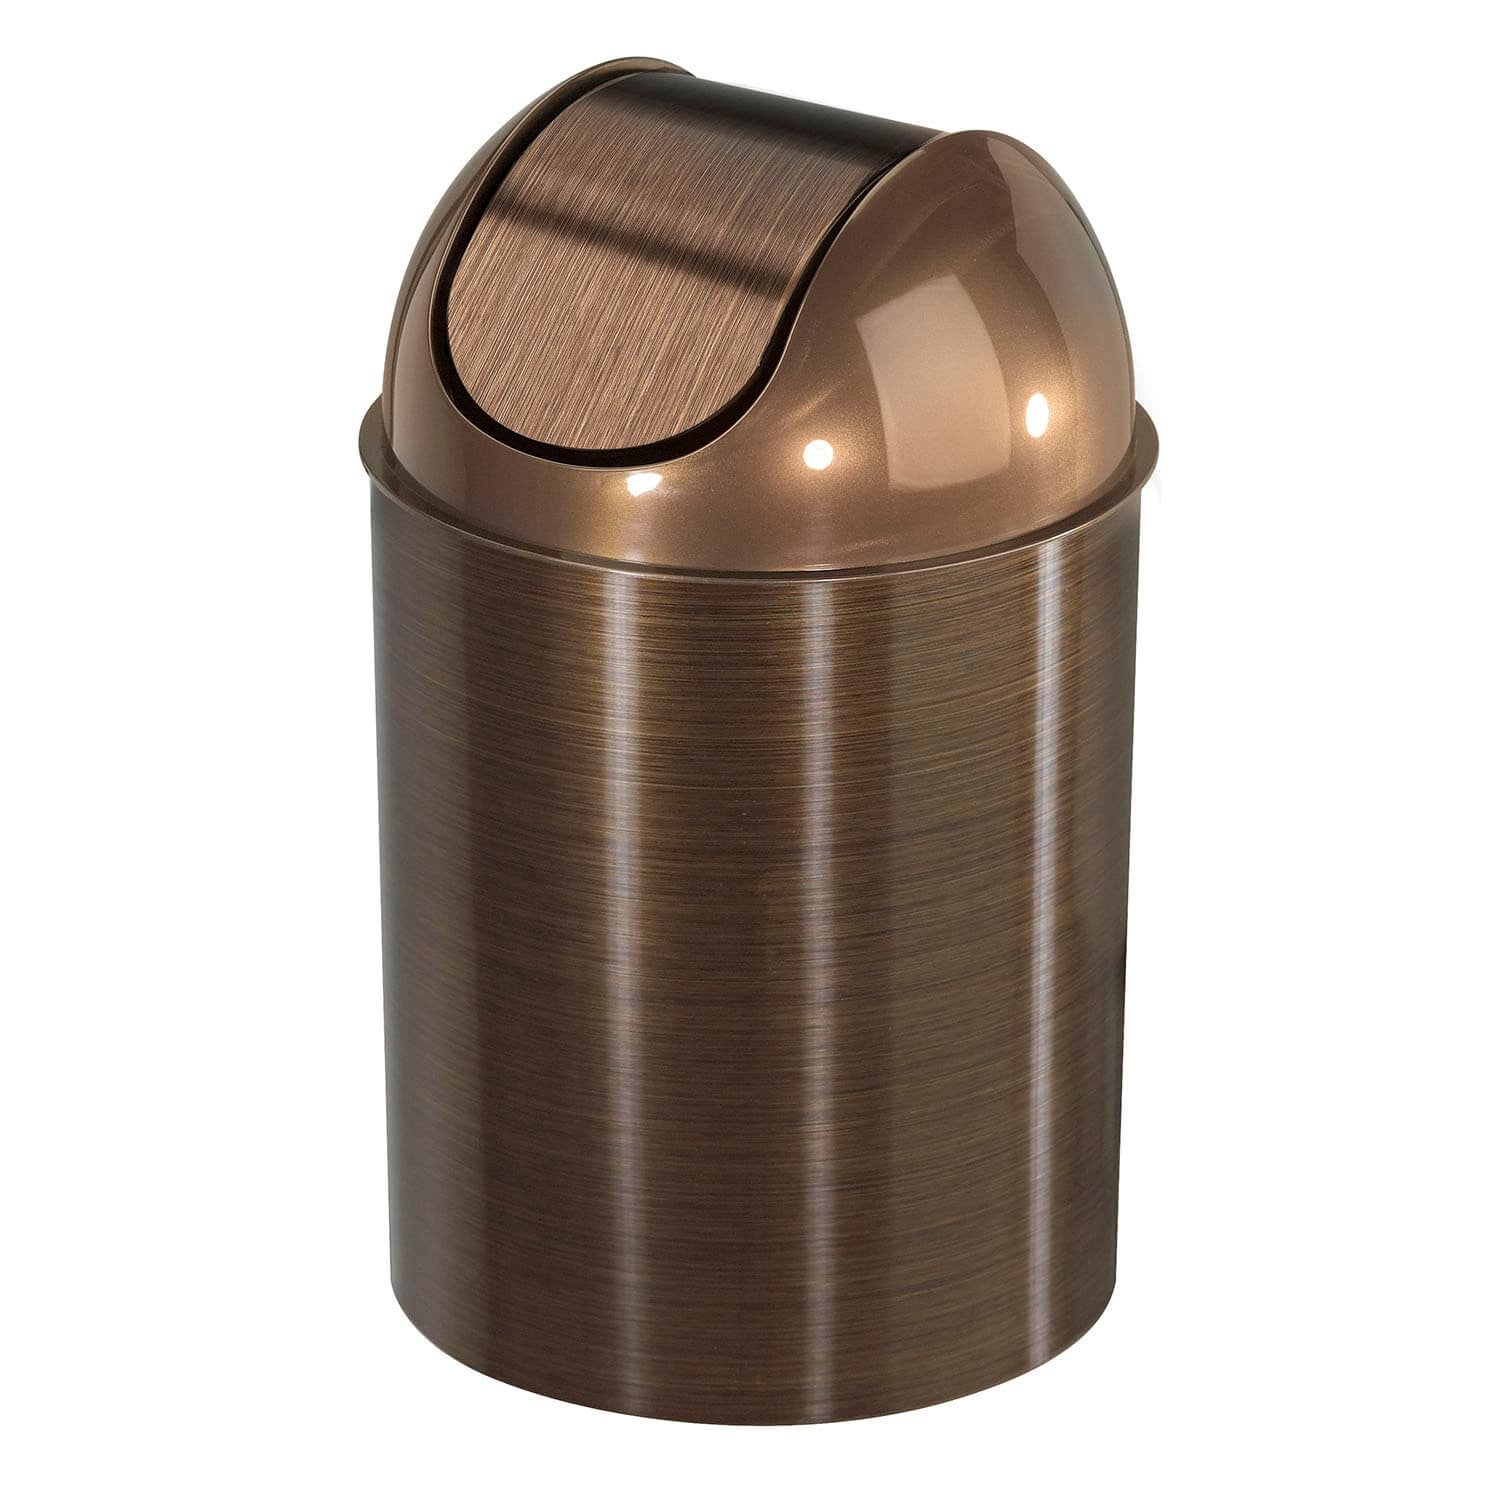 Mezzo Trash Can - Nickel